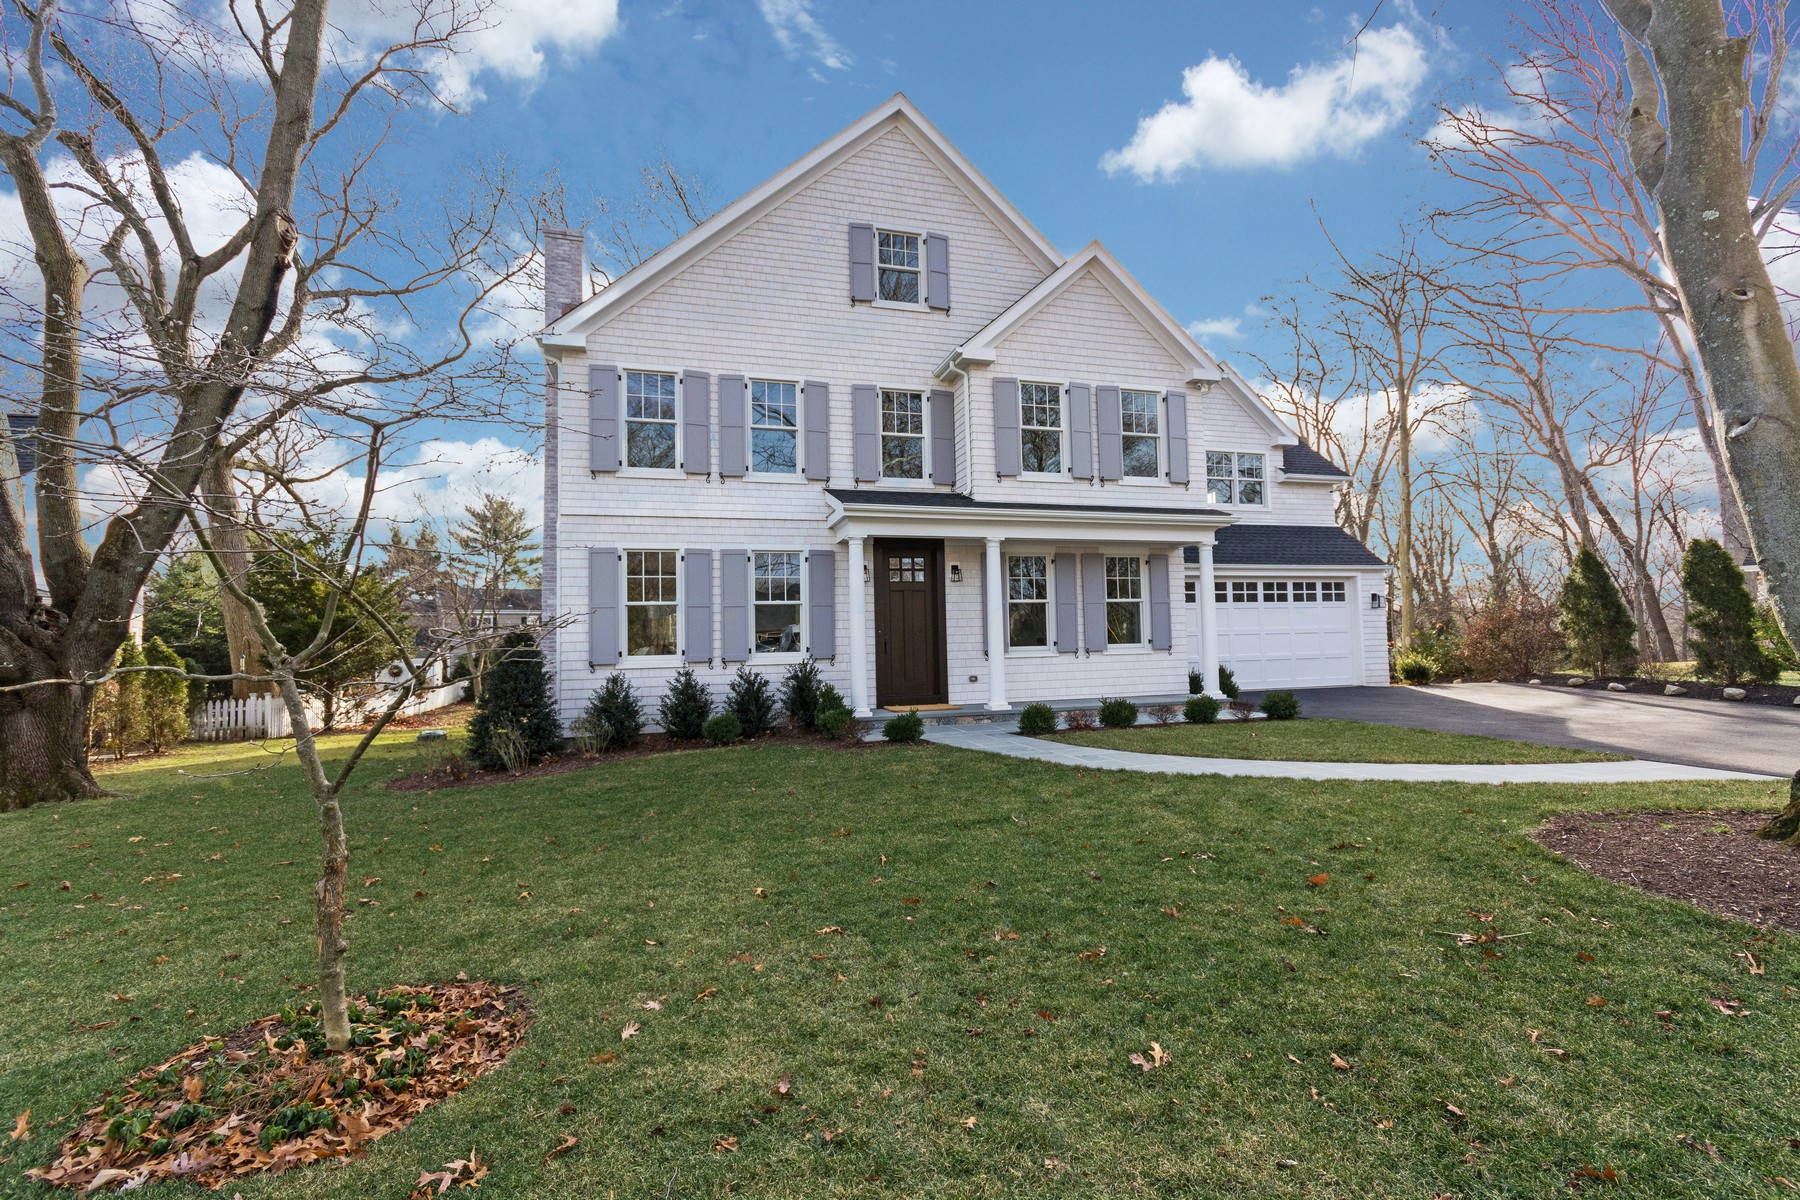 Vivienda unifamiliar por un Venta en Built For The Discerning Buyer 16 Phillips Lane Darien, Connecticut, 06820 Estados Unidos